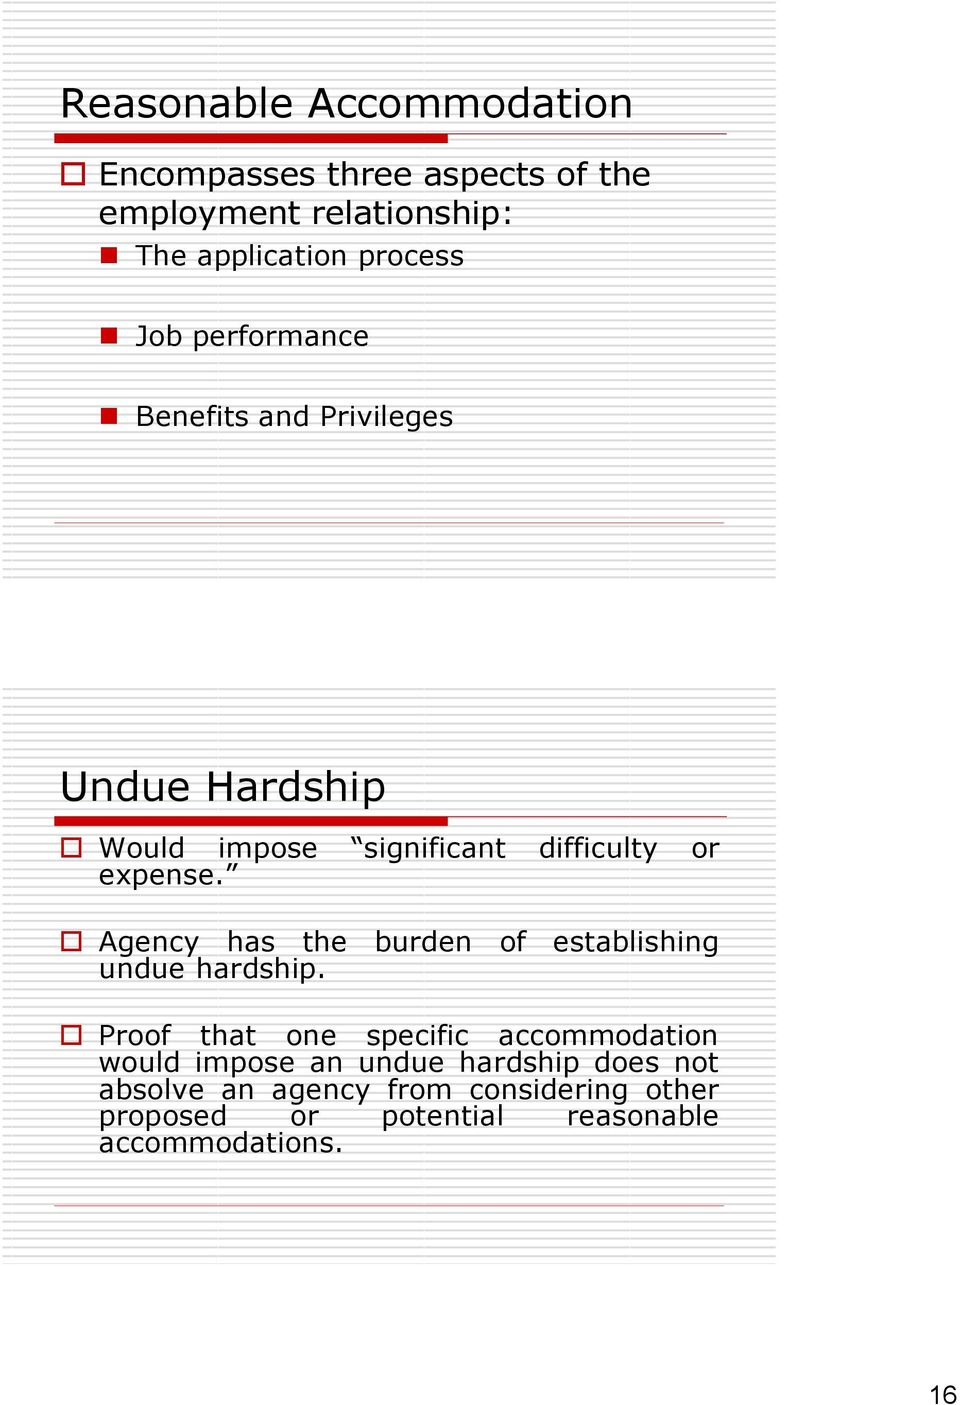 Agency has the burden of establishing undue hardship.